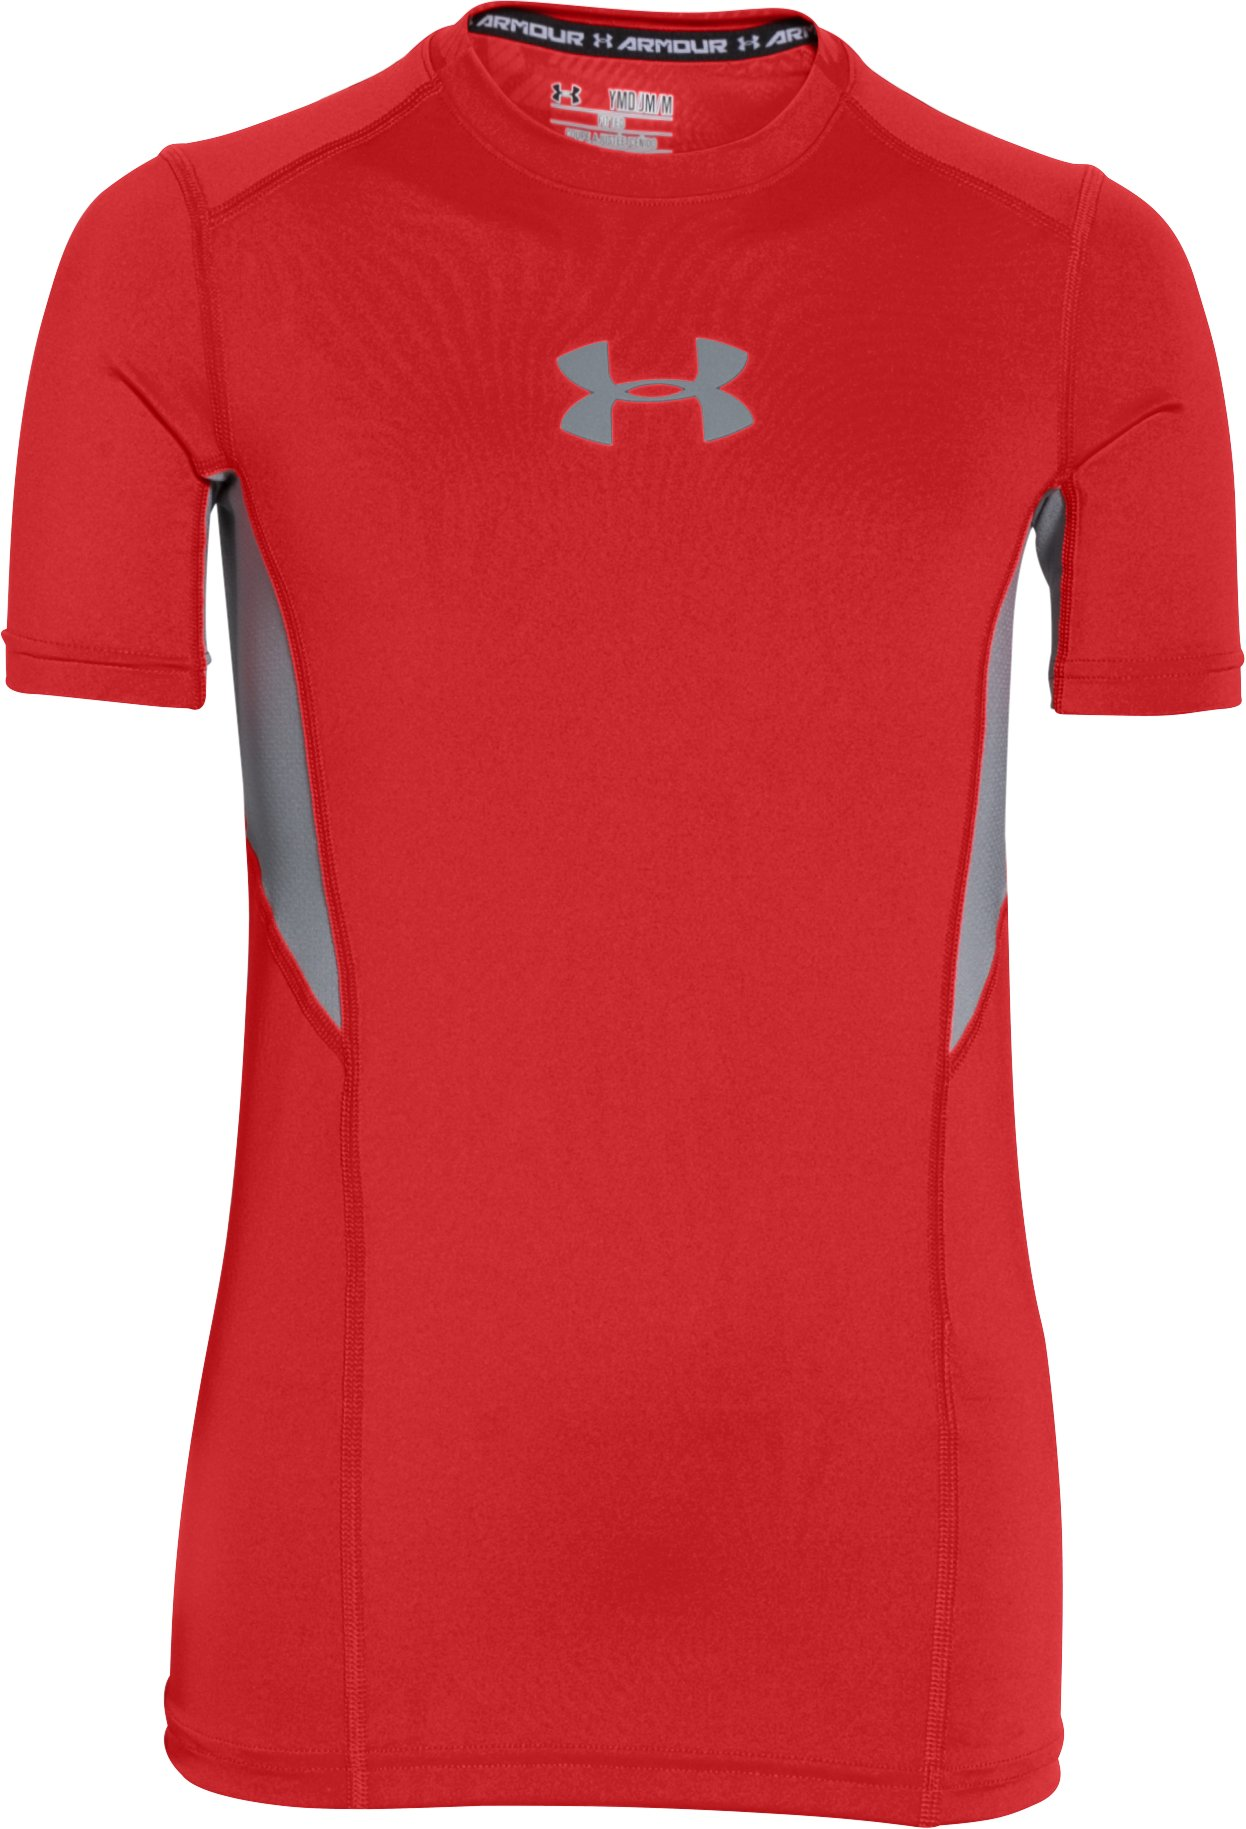 Boys' UA CoolSwitch Fitted Short Sleeve Shirt, RISK RED